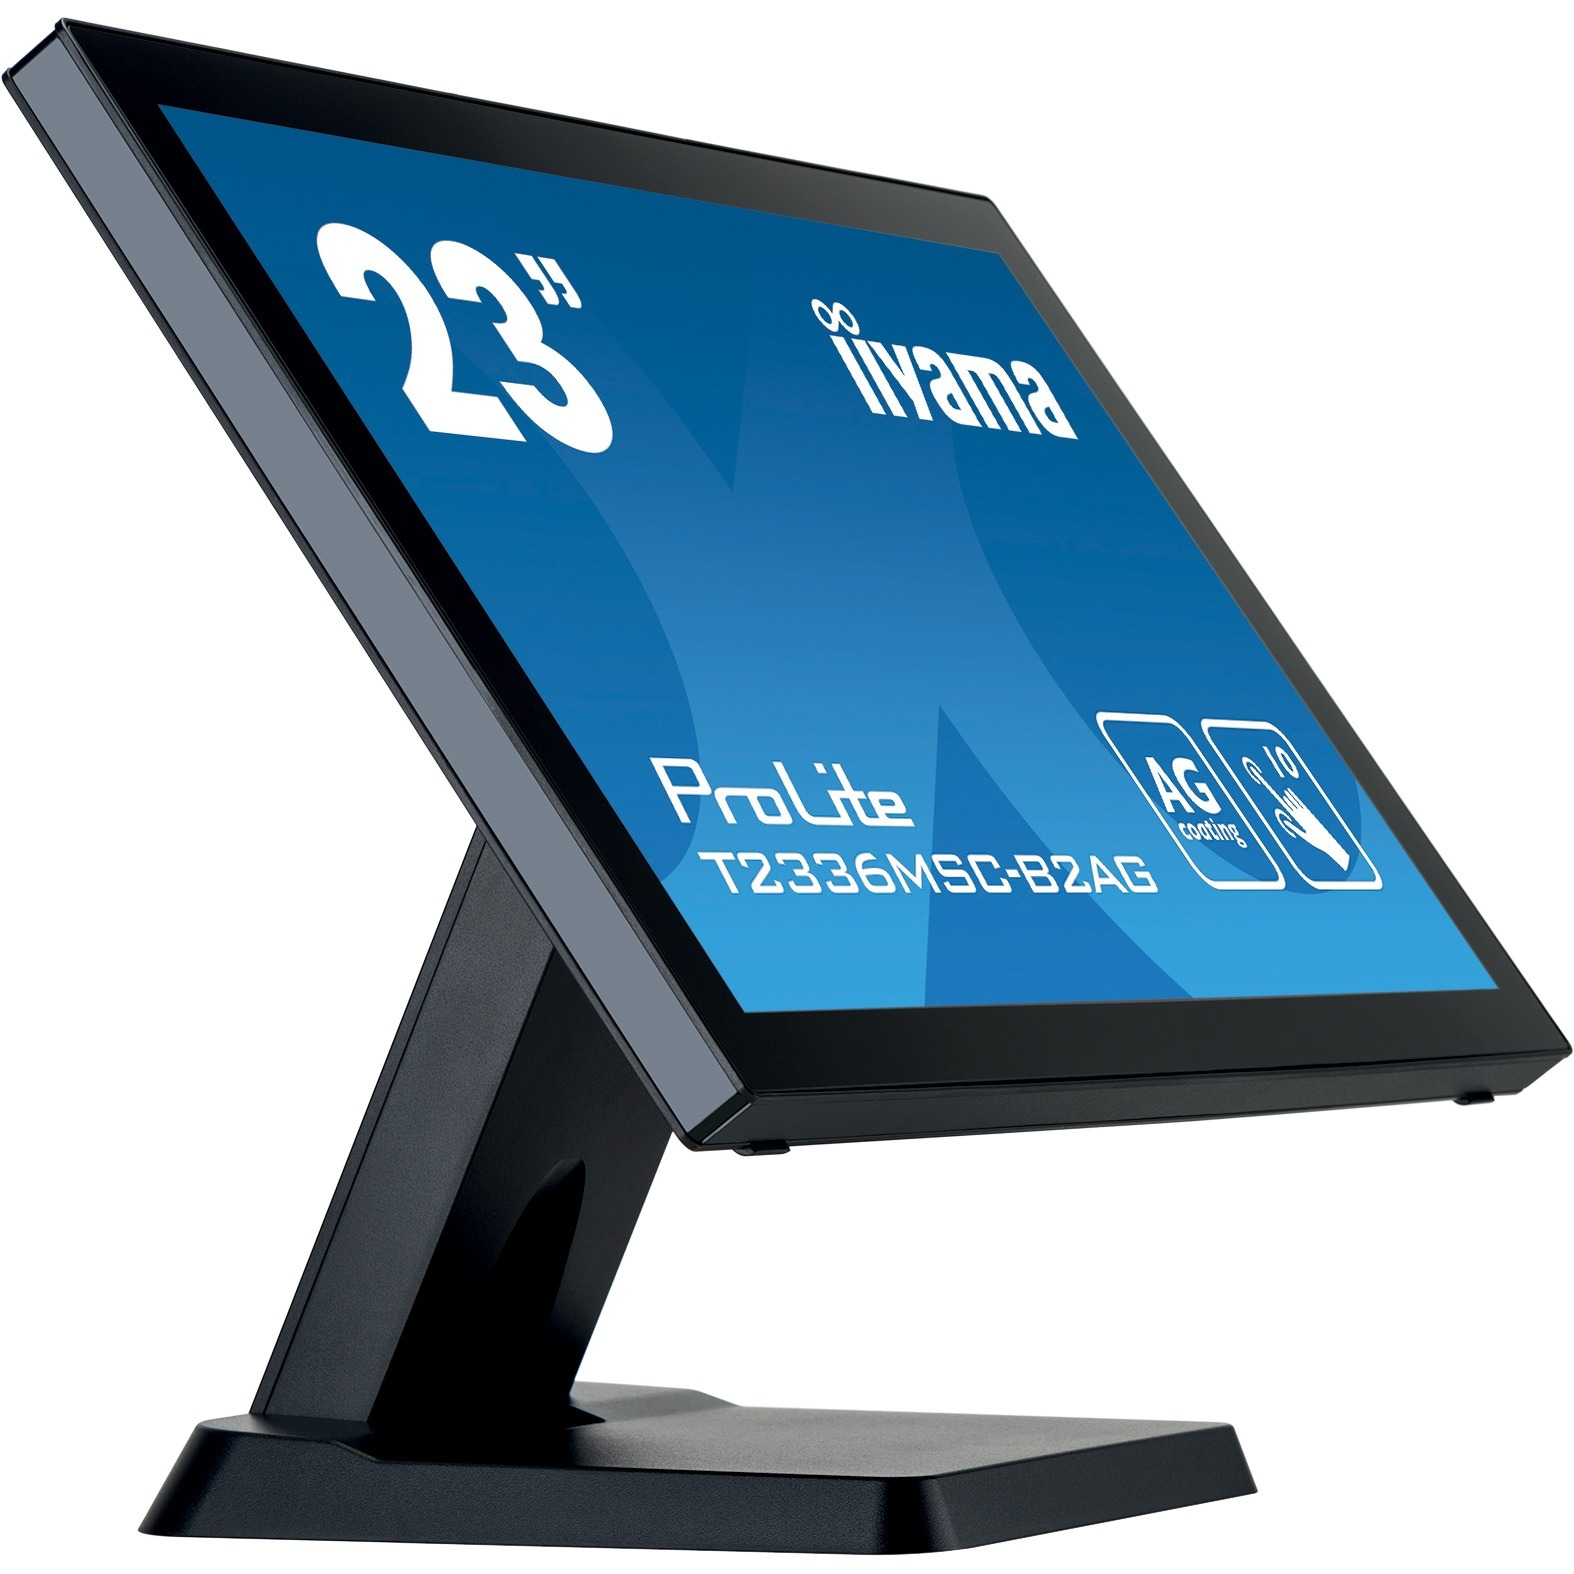 iiyama ProLite T2336MSC-B2AG 23inch LED Touchscreen Monitor - 16:9 - 5 ms